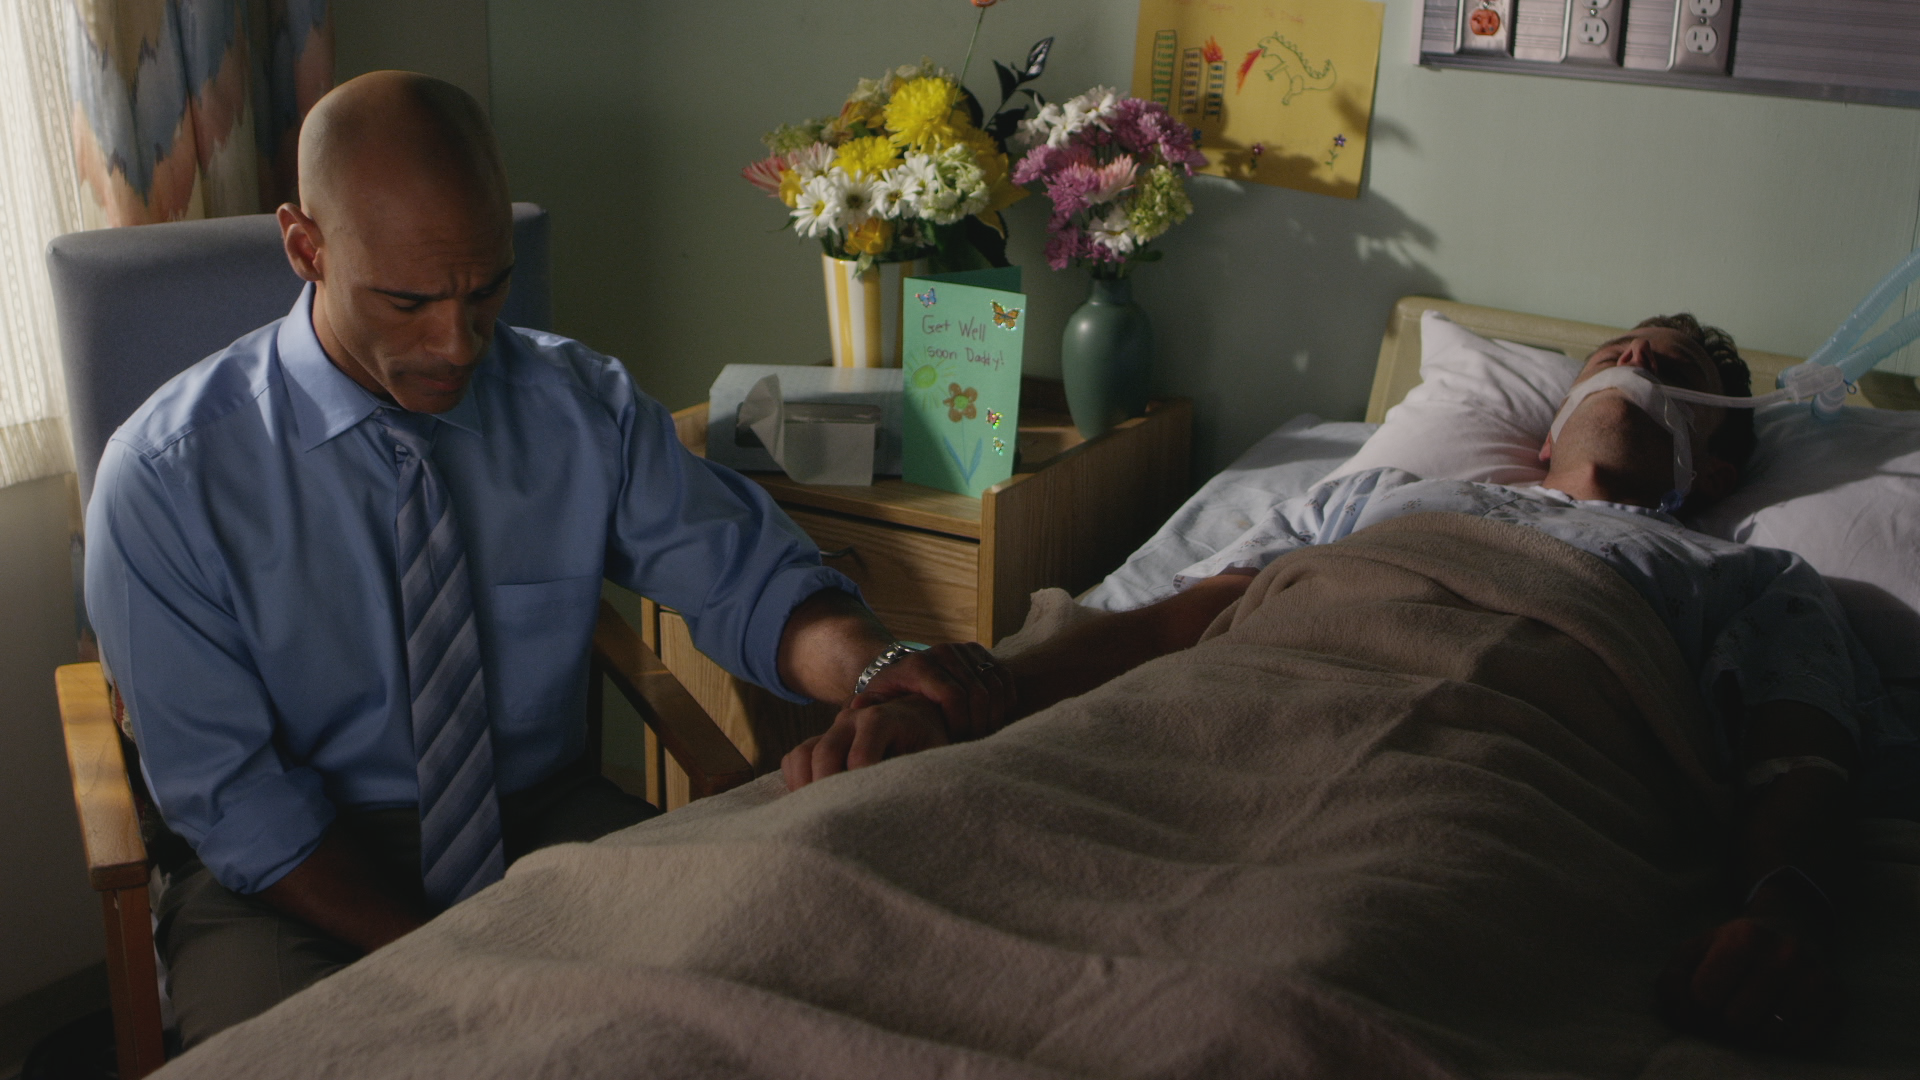 Darren Dupree Washington, Bradley Snedeker Hospital Scene Eternal Salvation